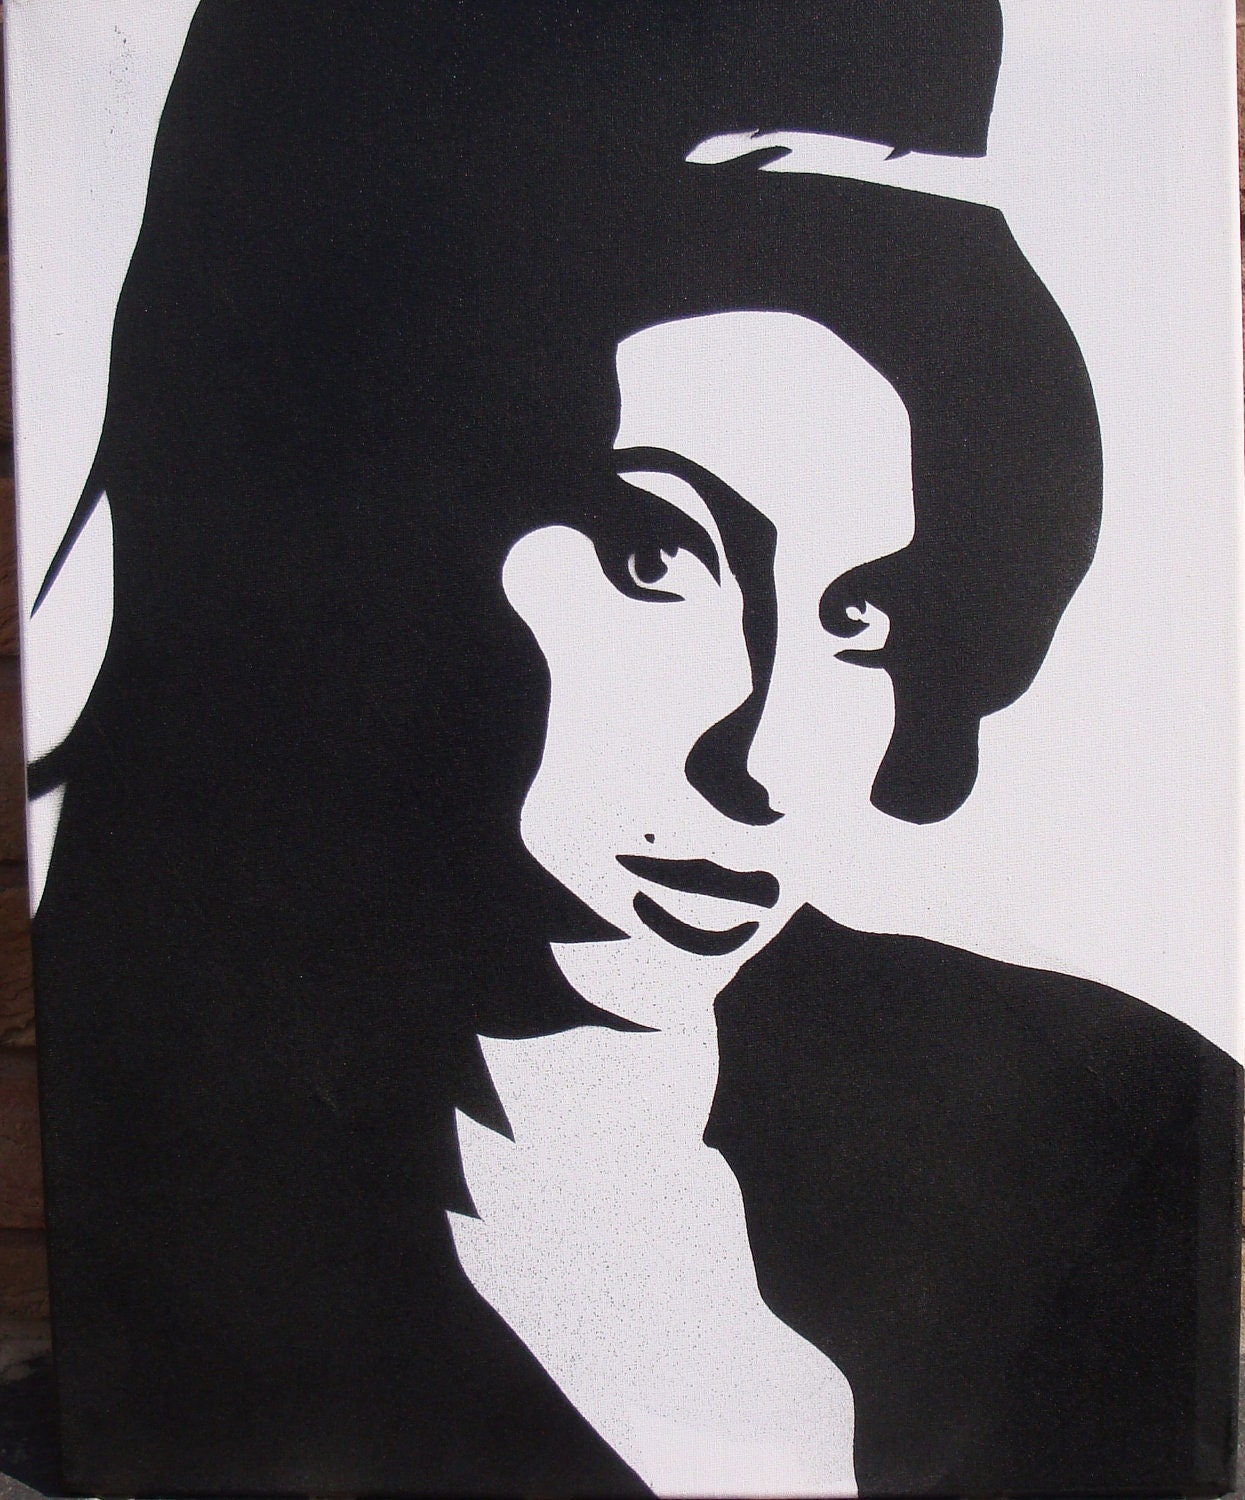 Amy winehouse stencil painting on canvas